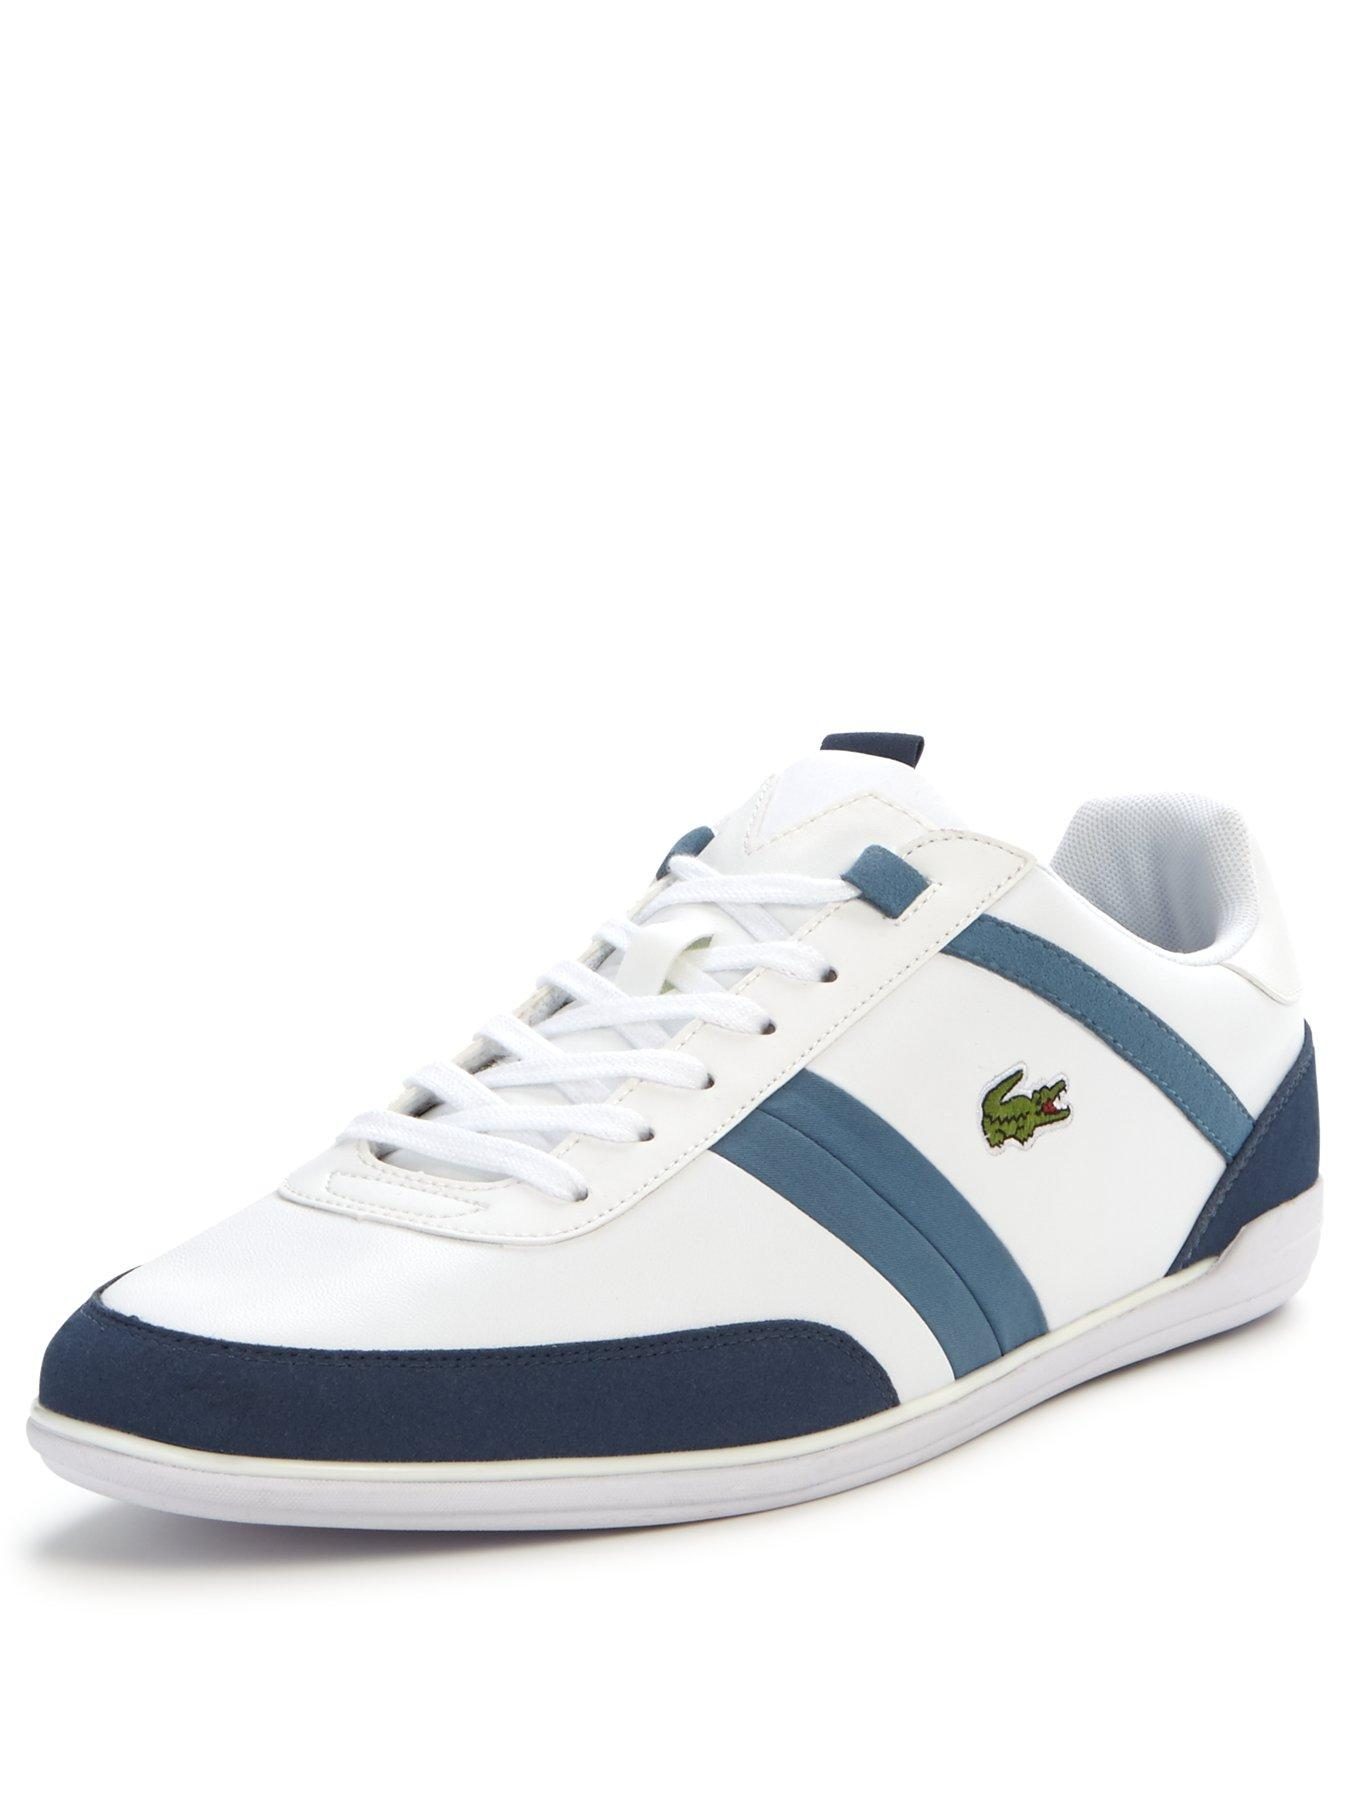 ee55e013cc74 how much does lacoste shoes cost